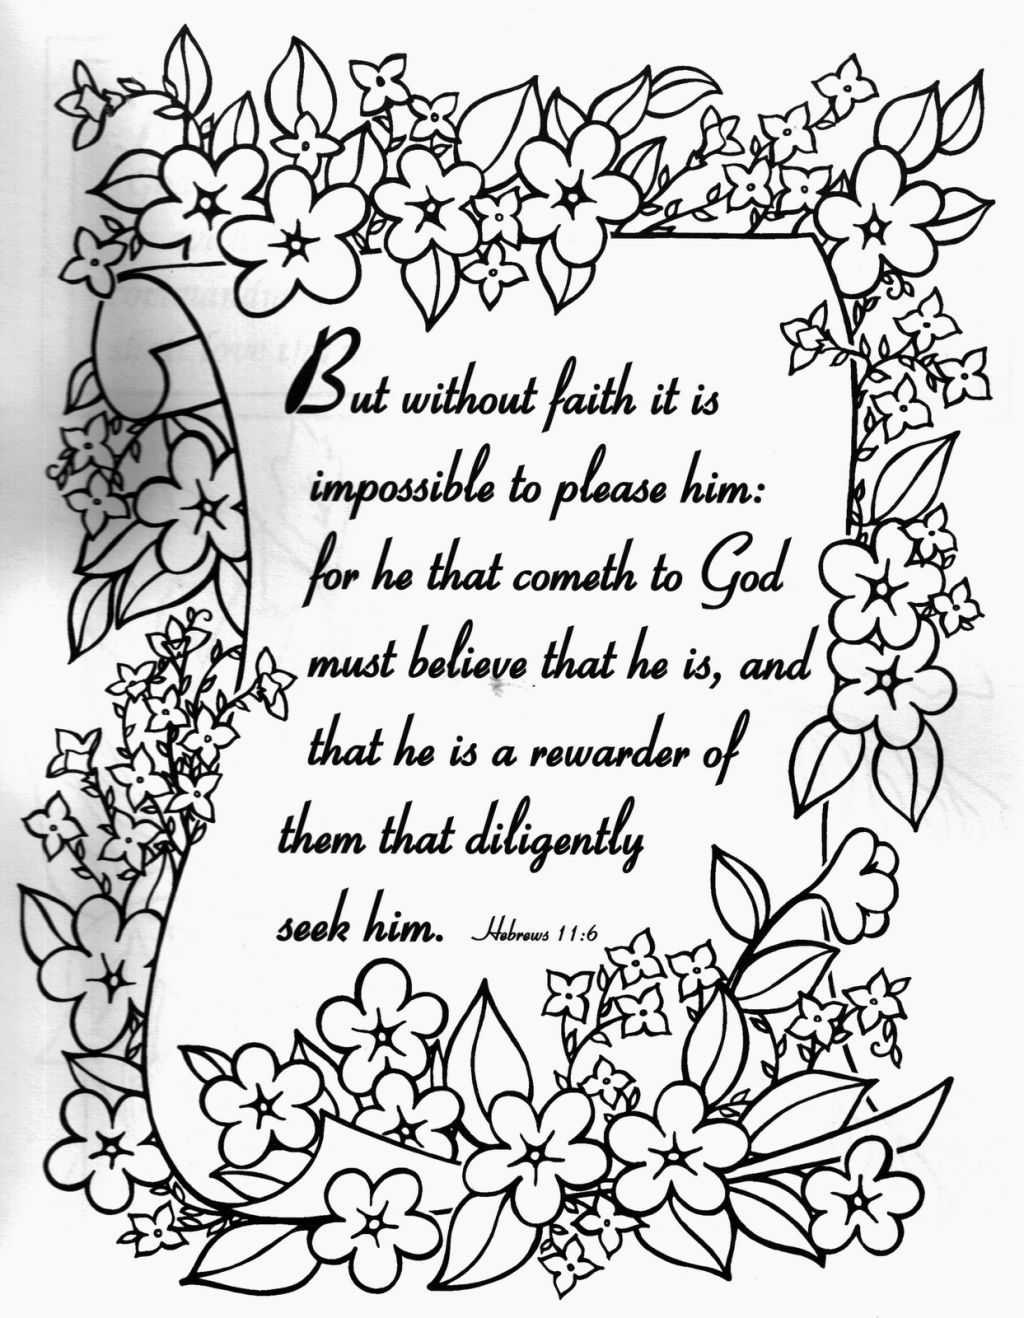 Coloring pages for adults quotes - Coloring Pages For Adults Quotes Description From Printablecolouringpages Co Uk I Searched For This On